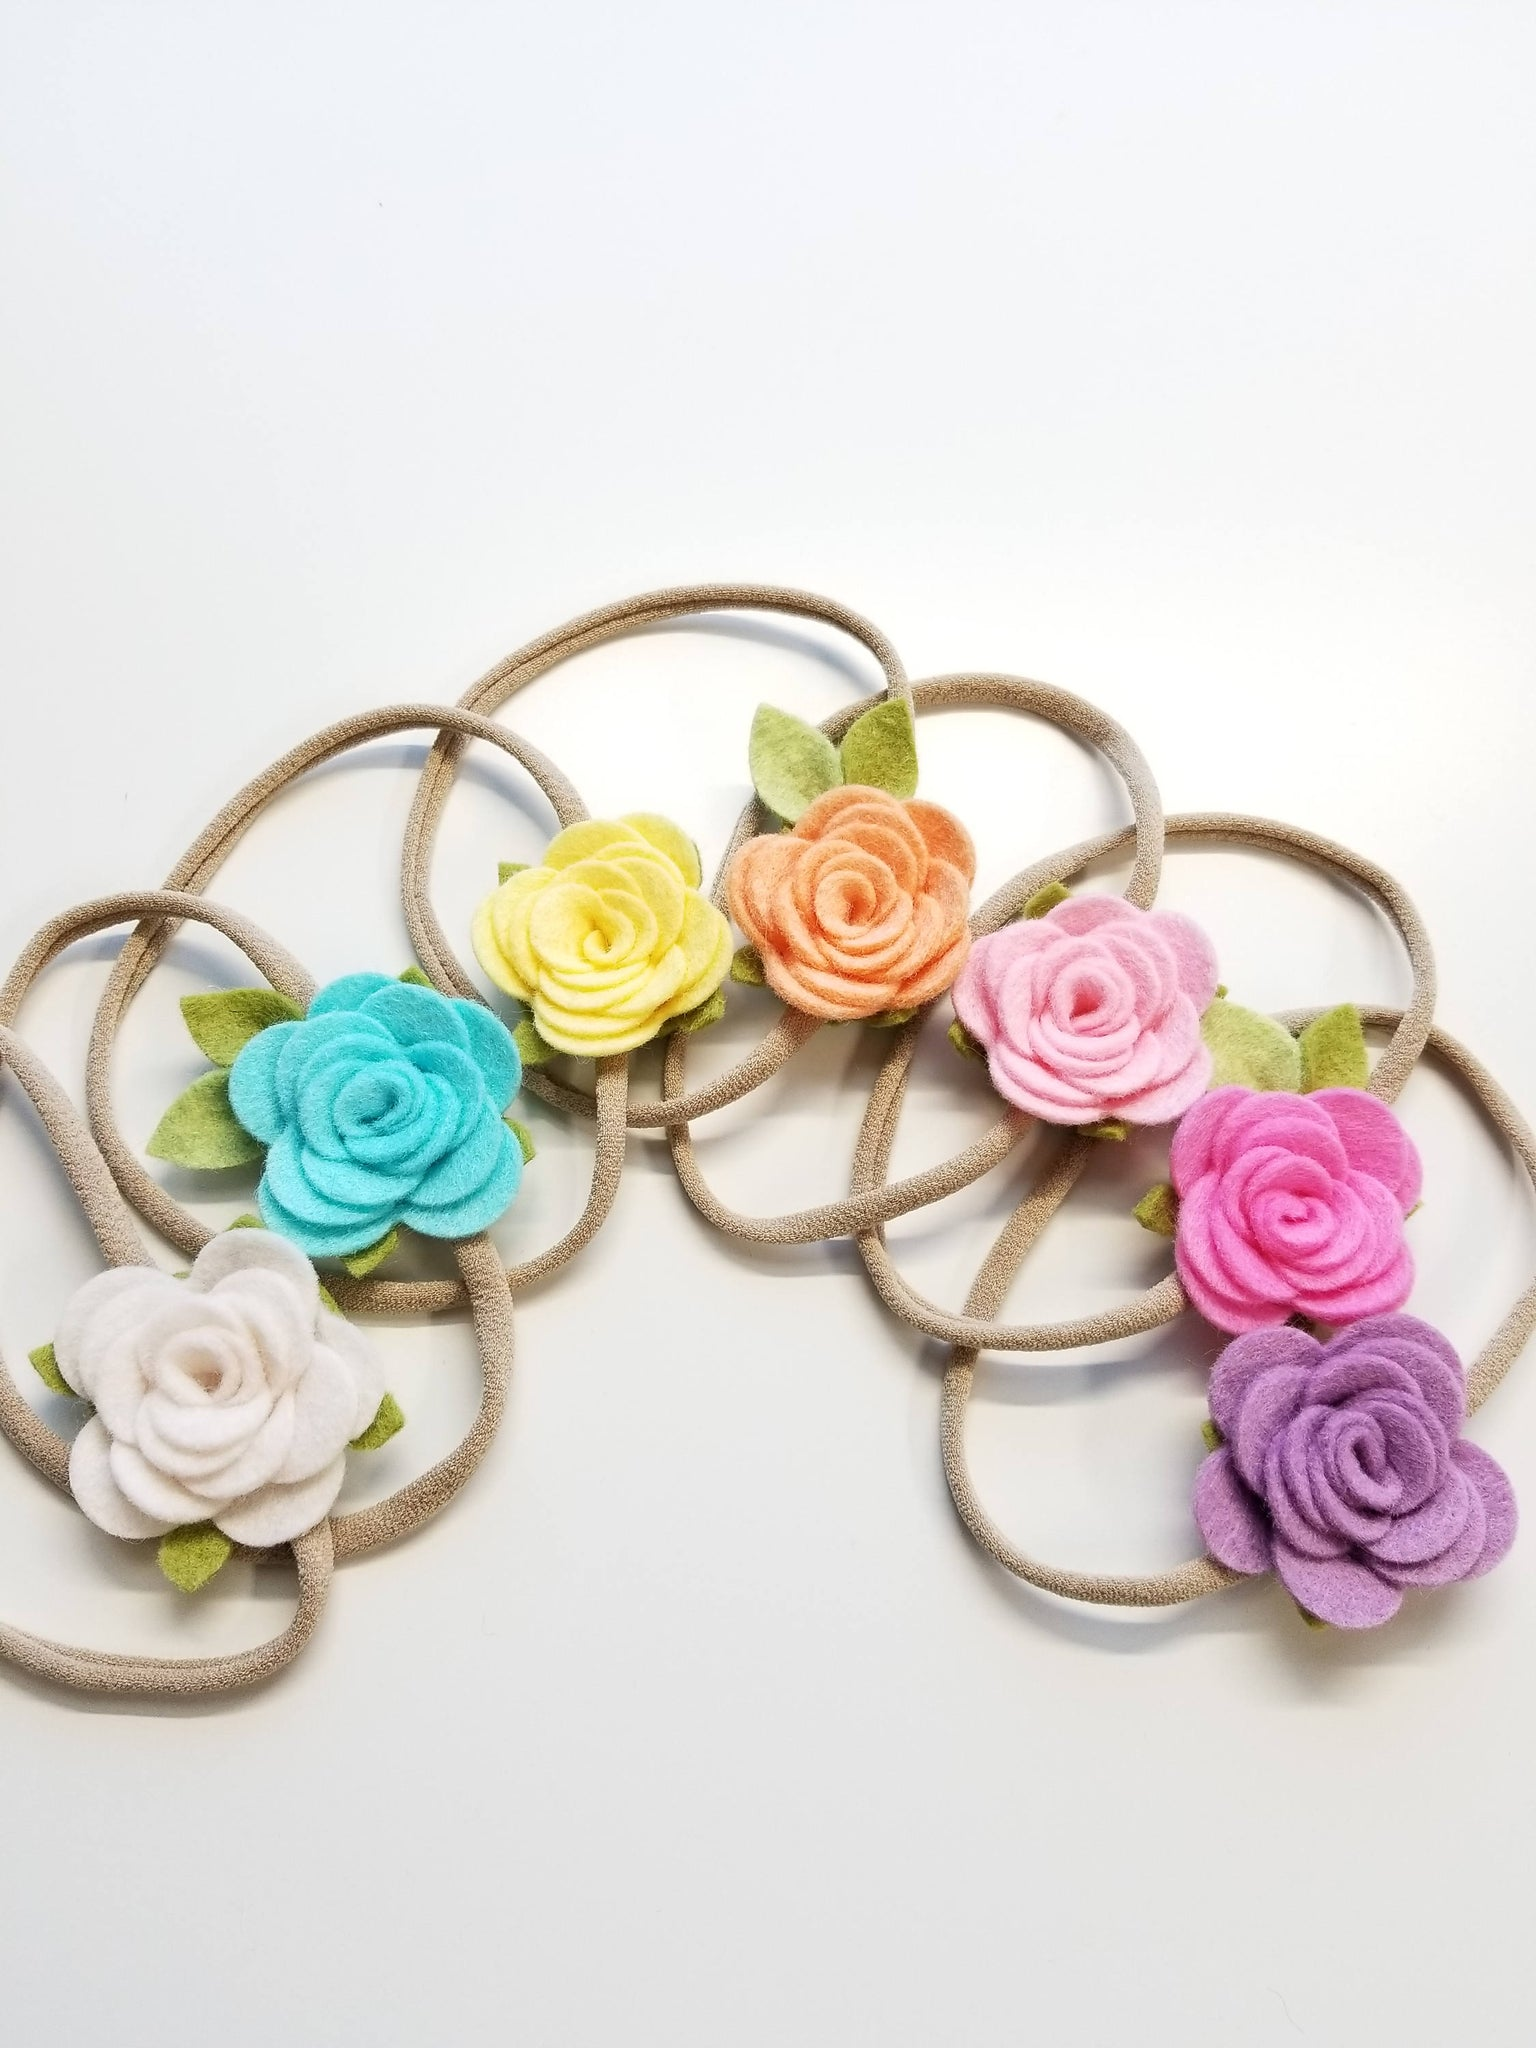 Flower rainbow, nylon headbands, felt flower, baby floral, hair accessories, vanaguelite, set 7